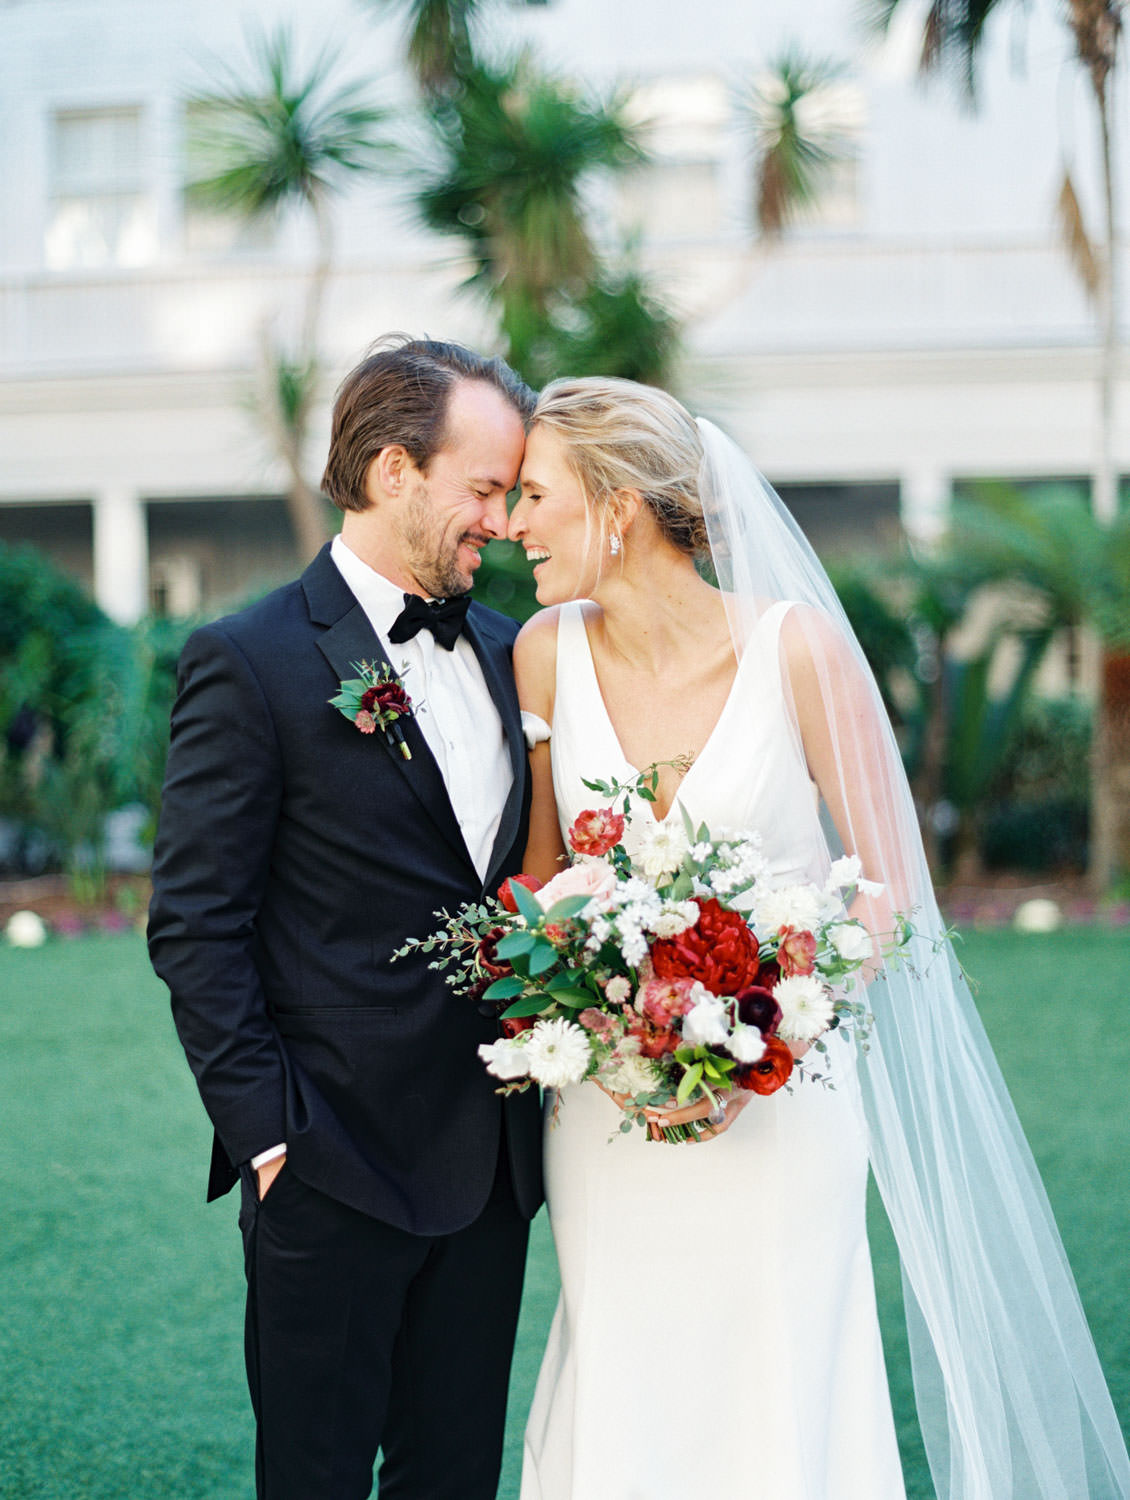 Bride and groom sharing a sweet moment. Bouquet with burgundy, blush, white, and greenery. Hotel Del Coronado wedding on film by Cavin Elizabeth.